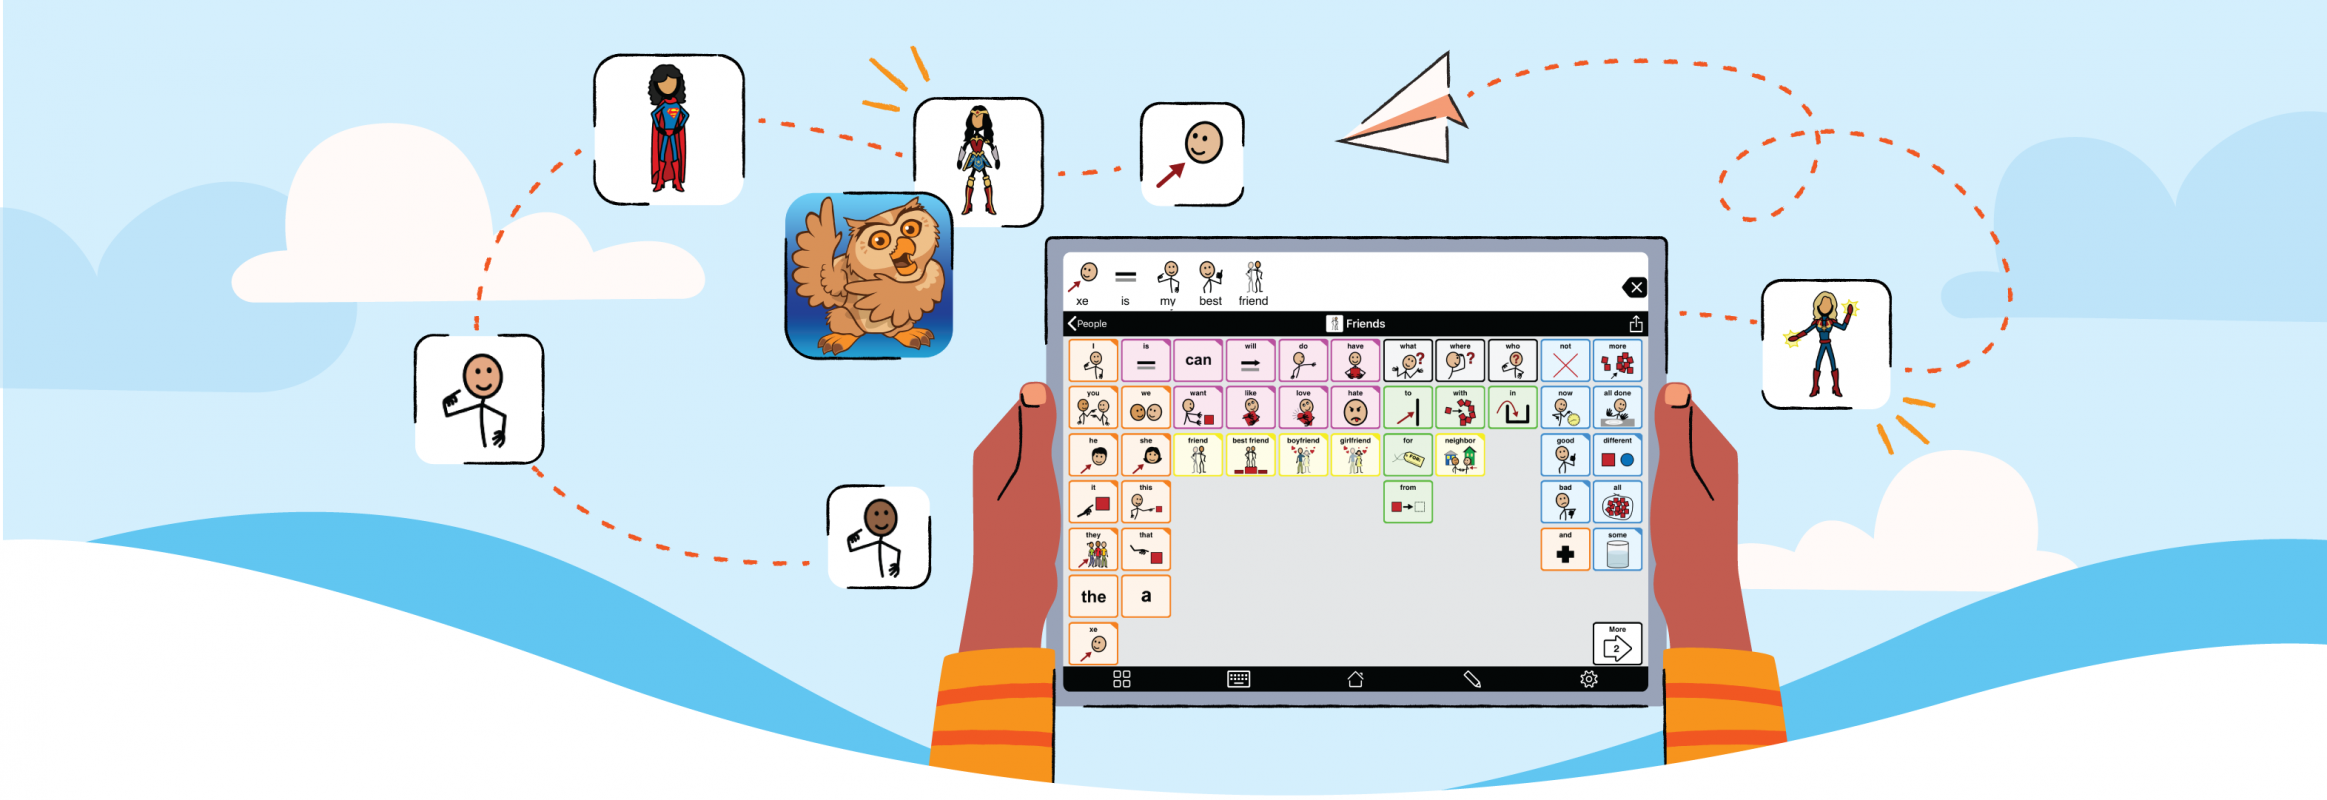 Proloquo 2 Go screen with female super heroes and gender neutral symbol